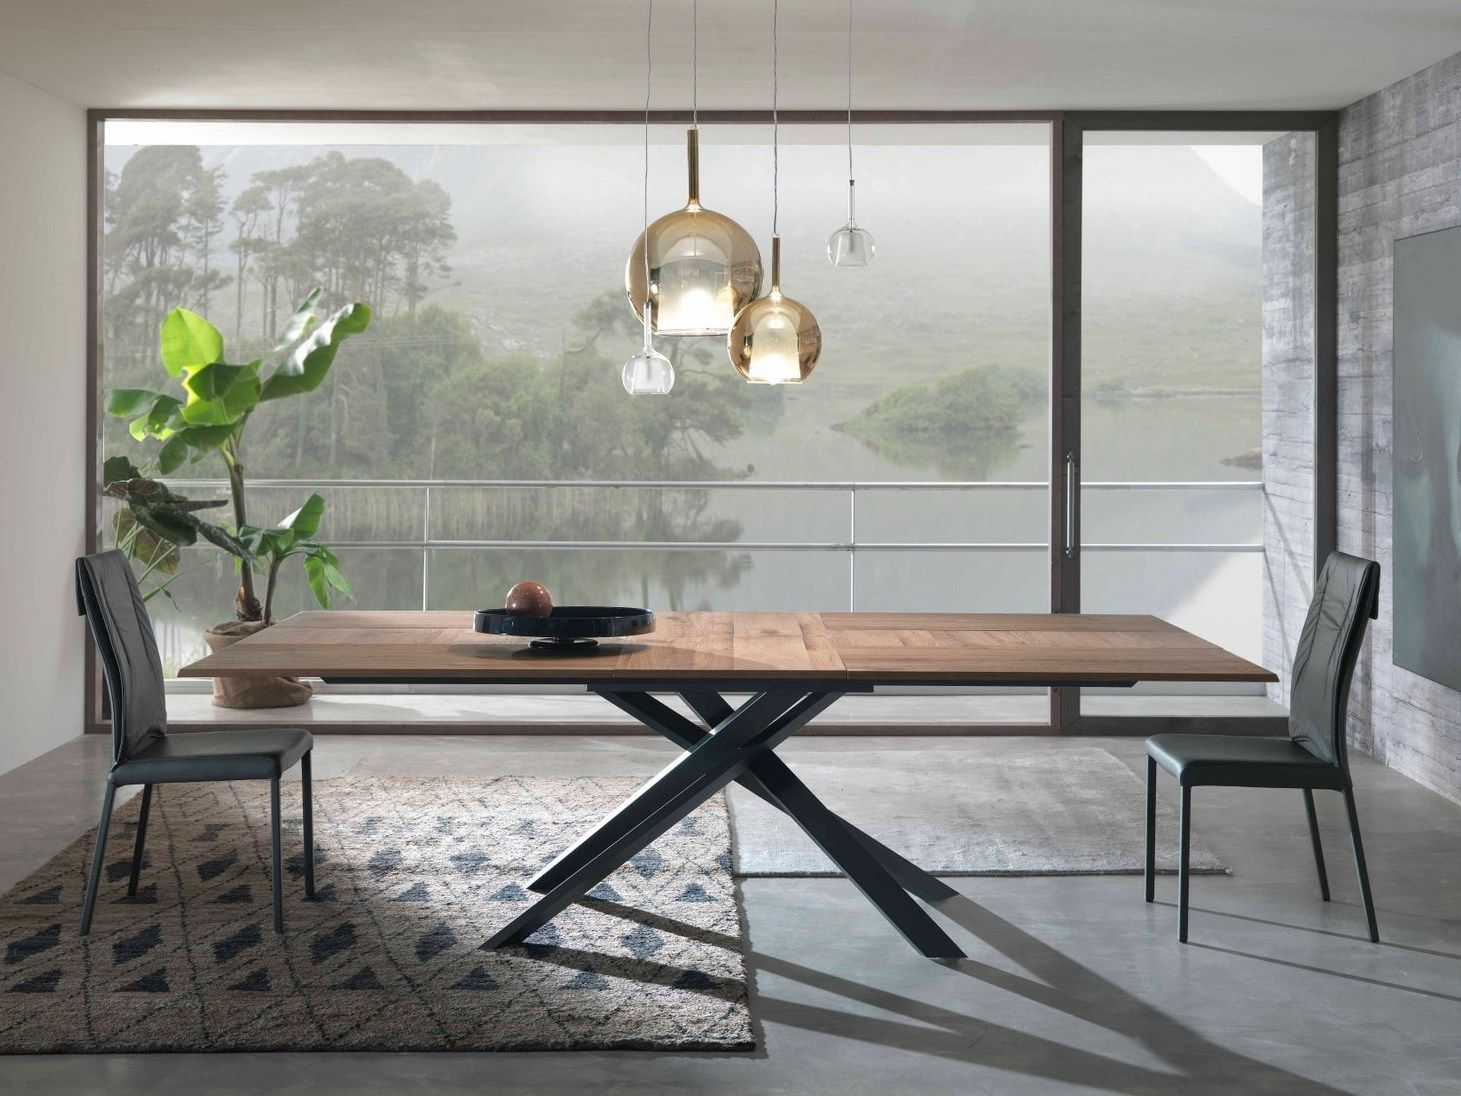 Tavolo Ozzio ~ Extending rectangular wooden table by ozzio italia design